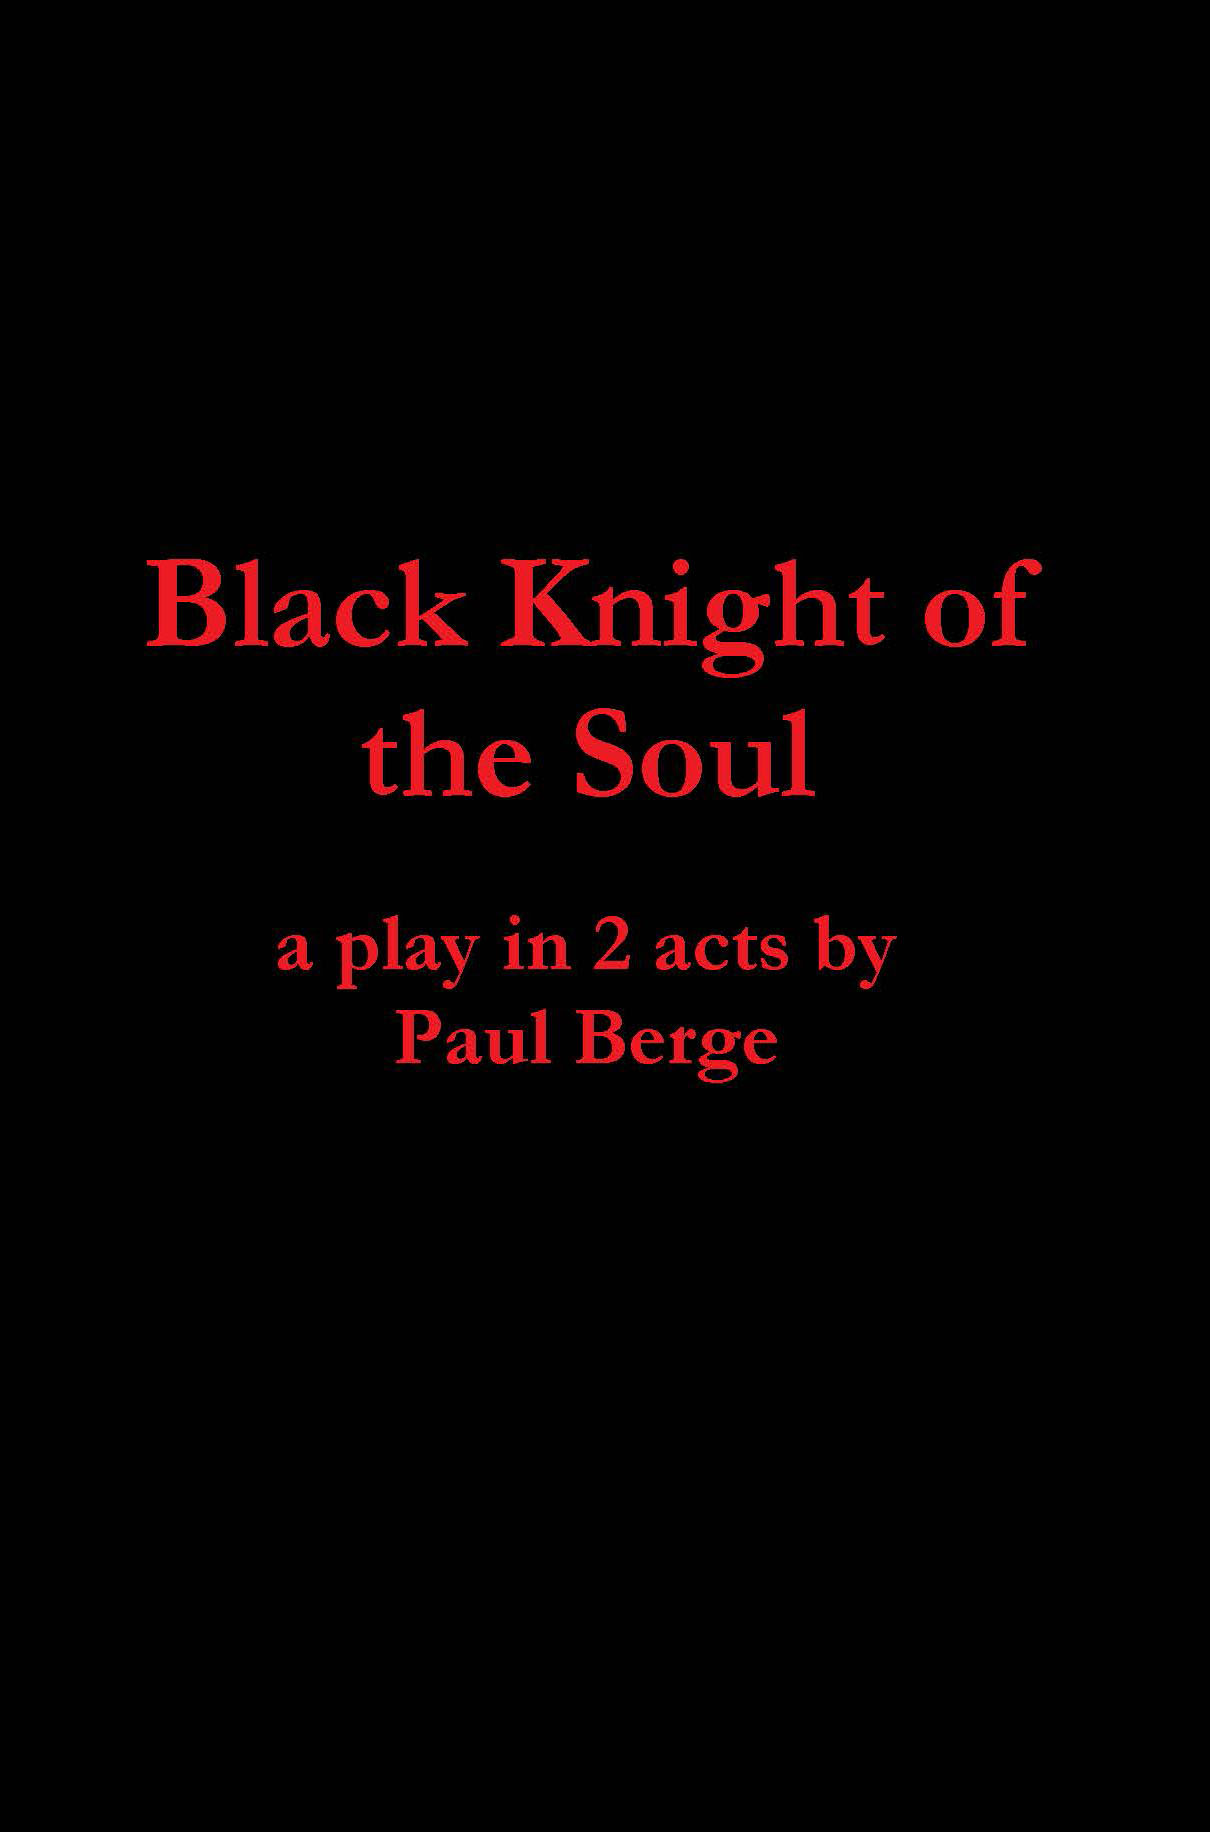 Black Knight of the Soul